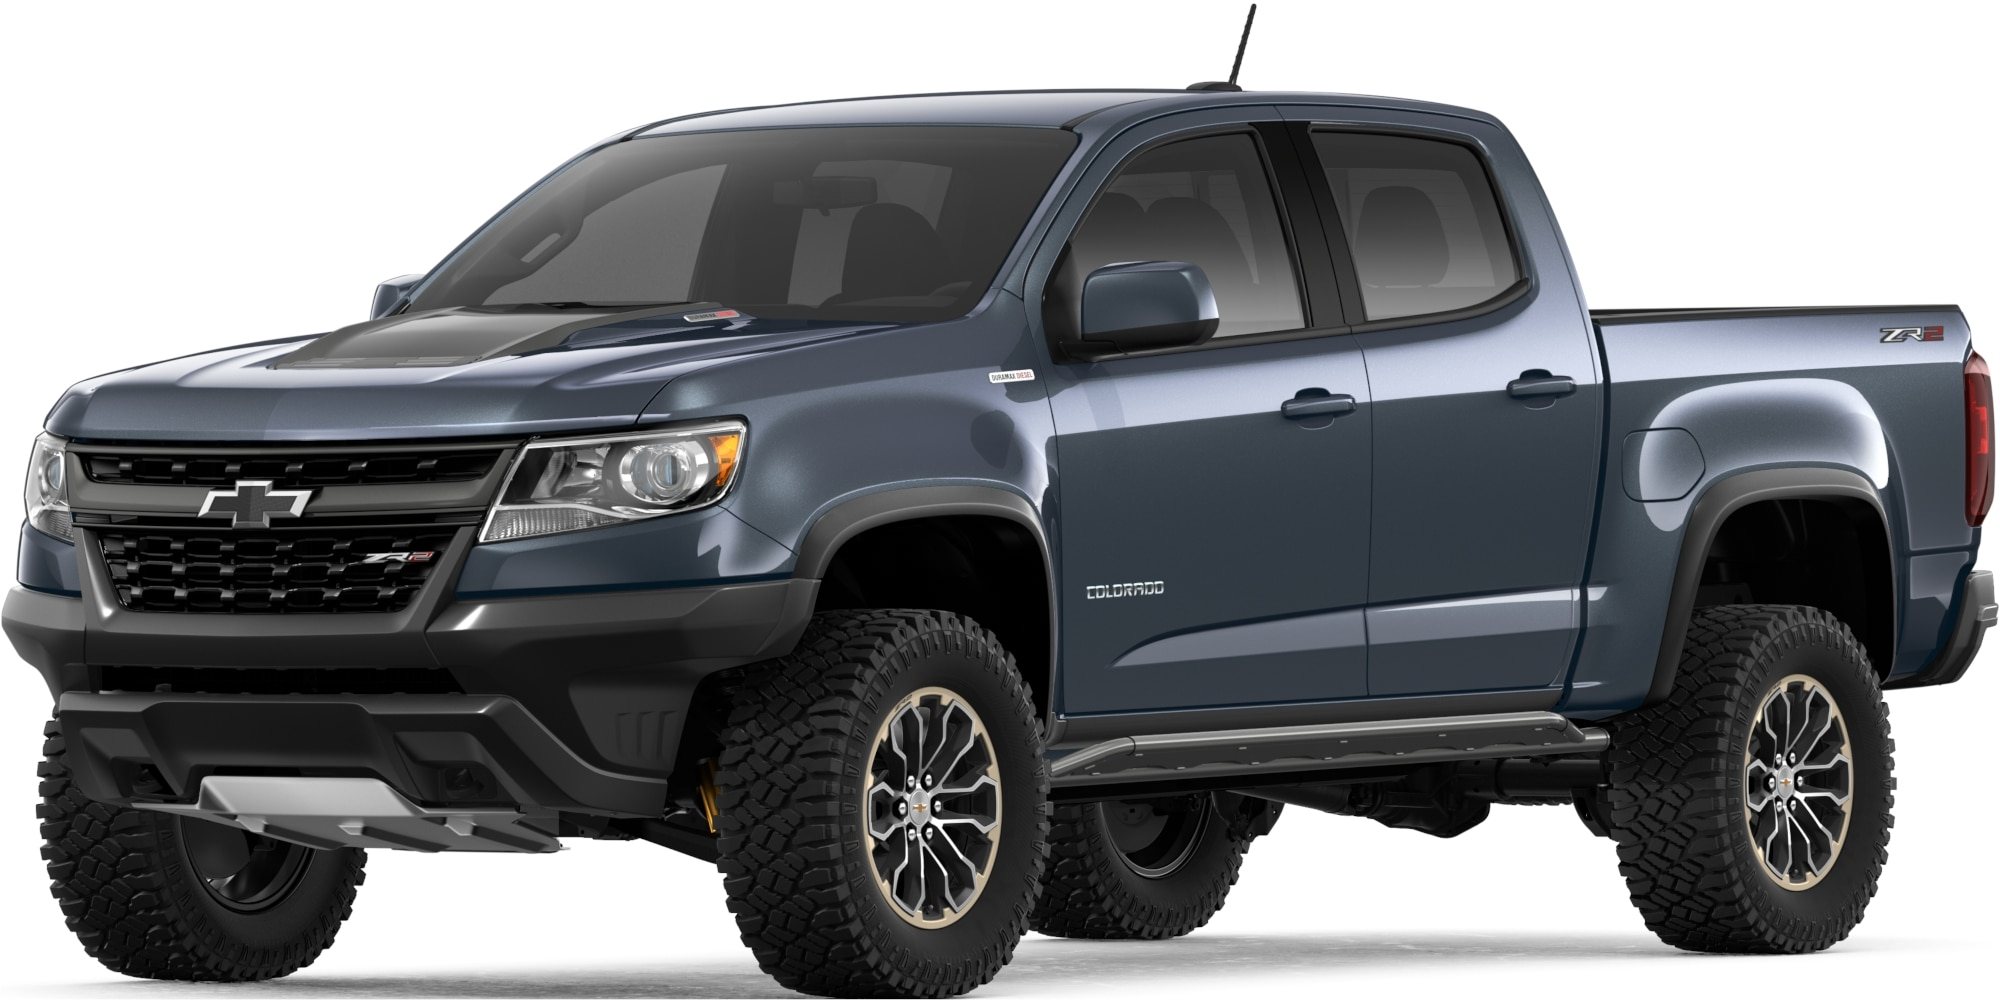 Camioneta todo terreno Colorado ZR2 2019: vista frontal